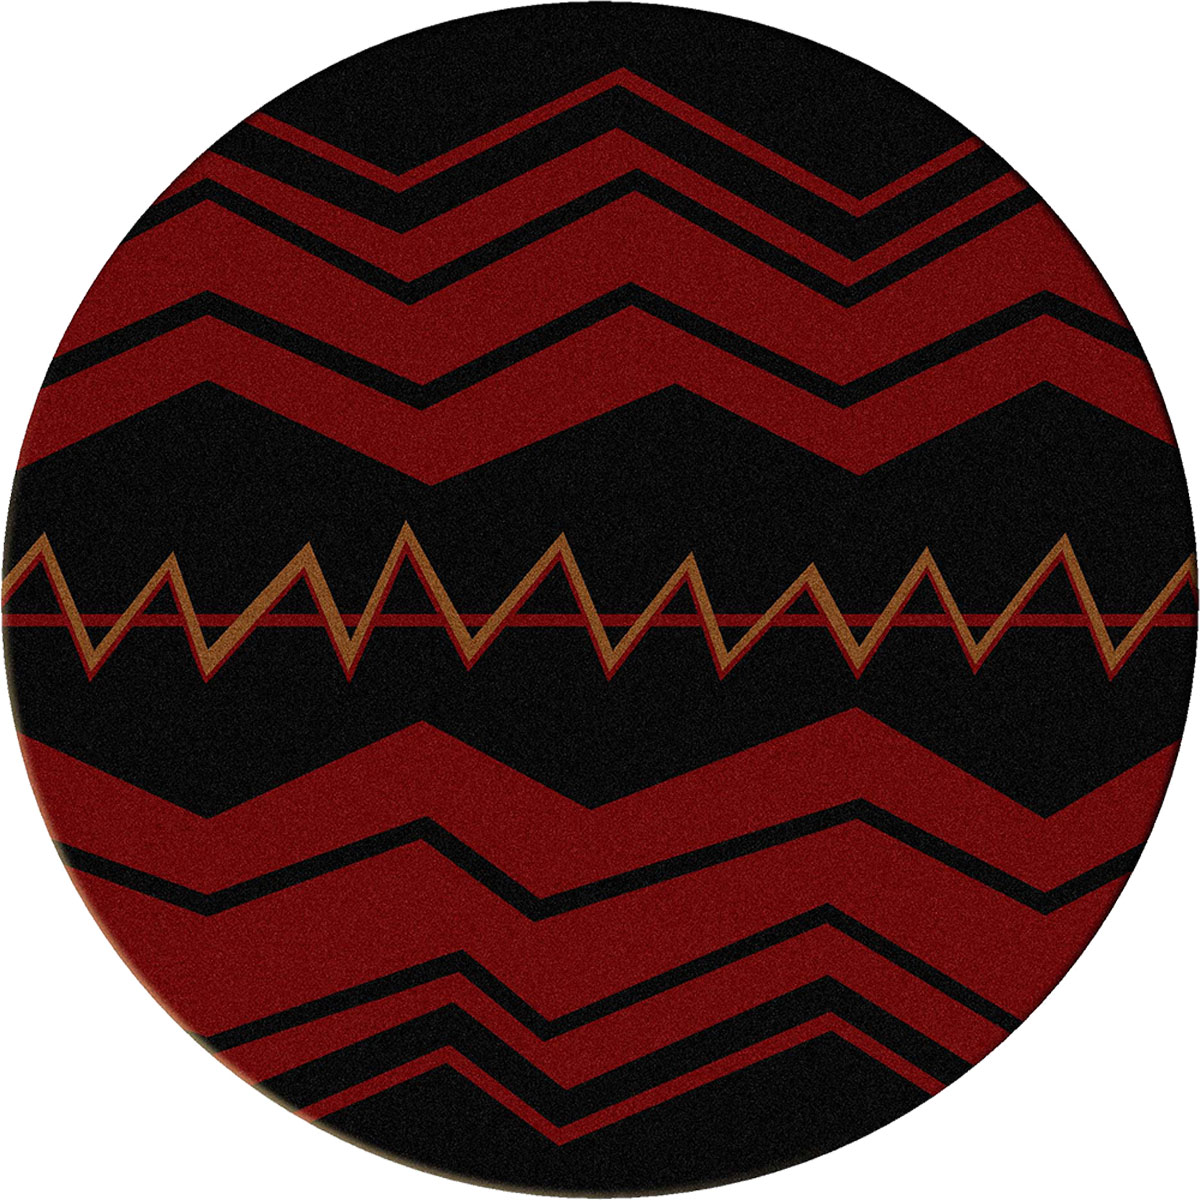 War Path Black Rug - 8 Ft. Round